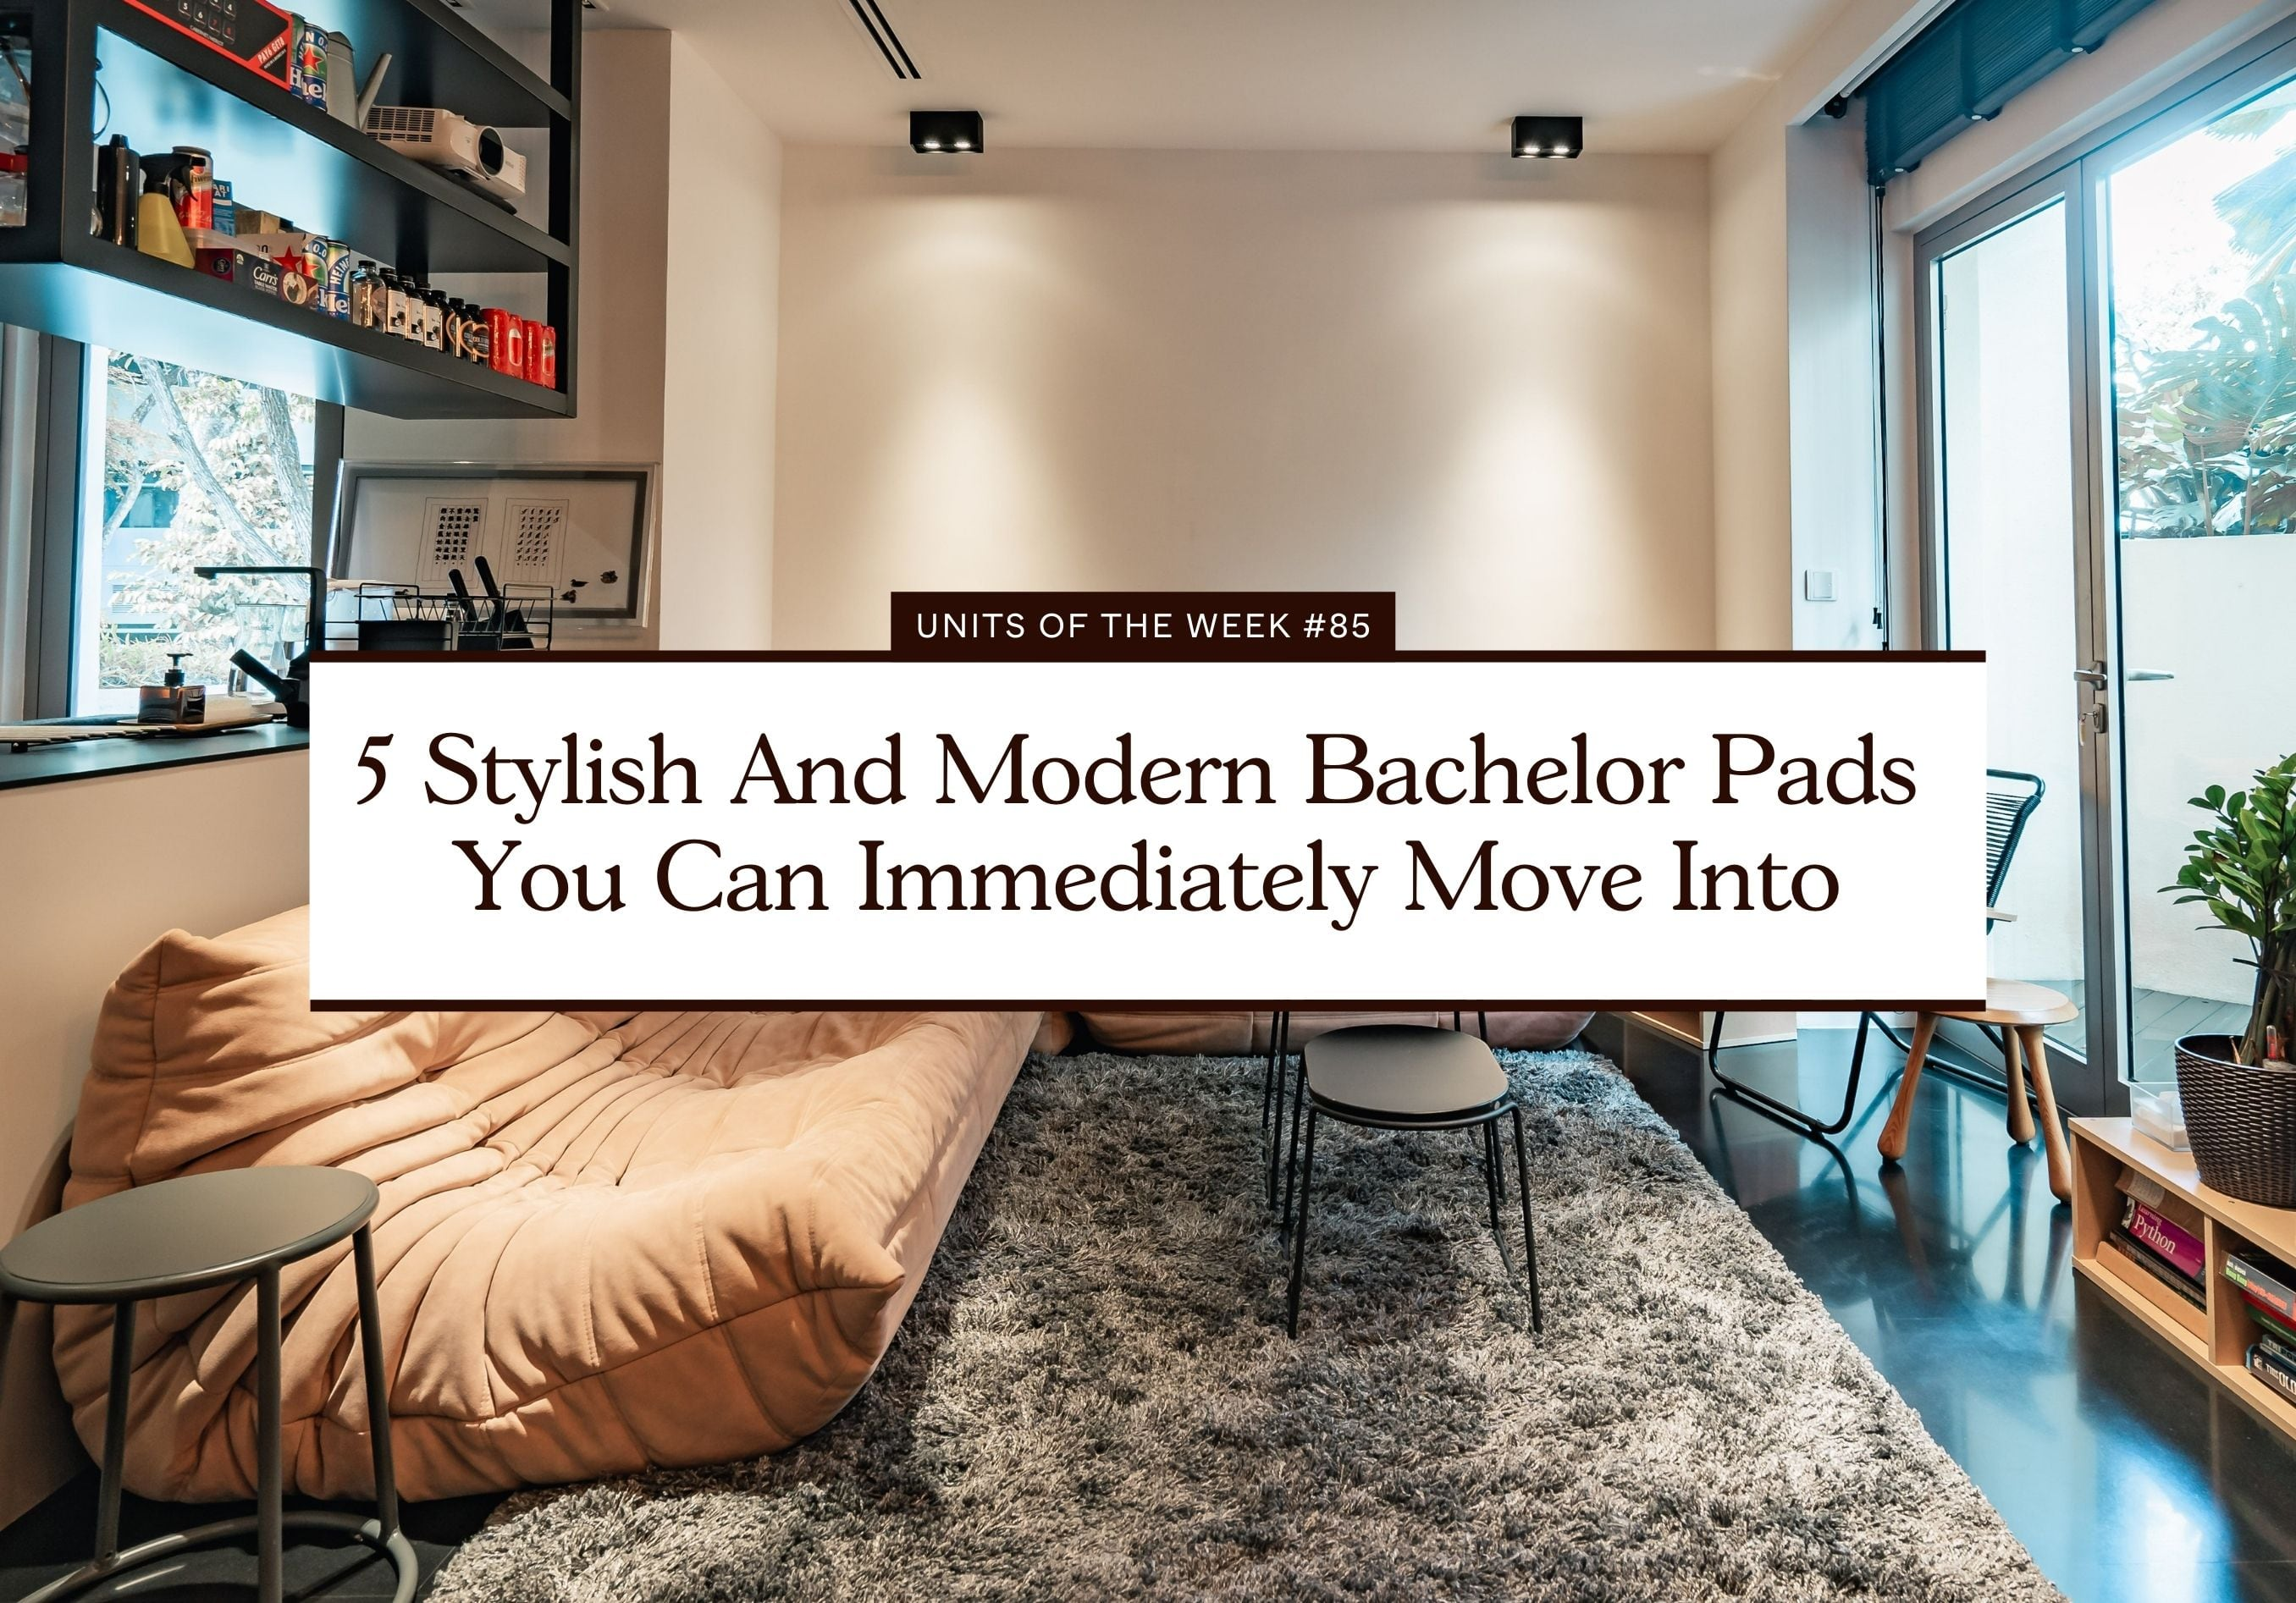 5 Stylish And Modern Bachelor Pads You Can Immediately Move Into Unit of the Week 85